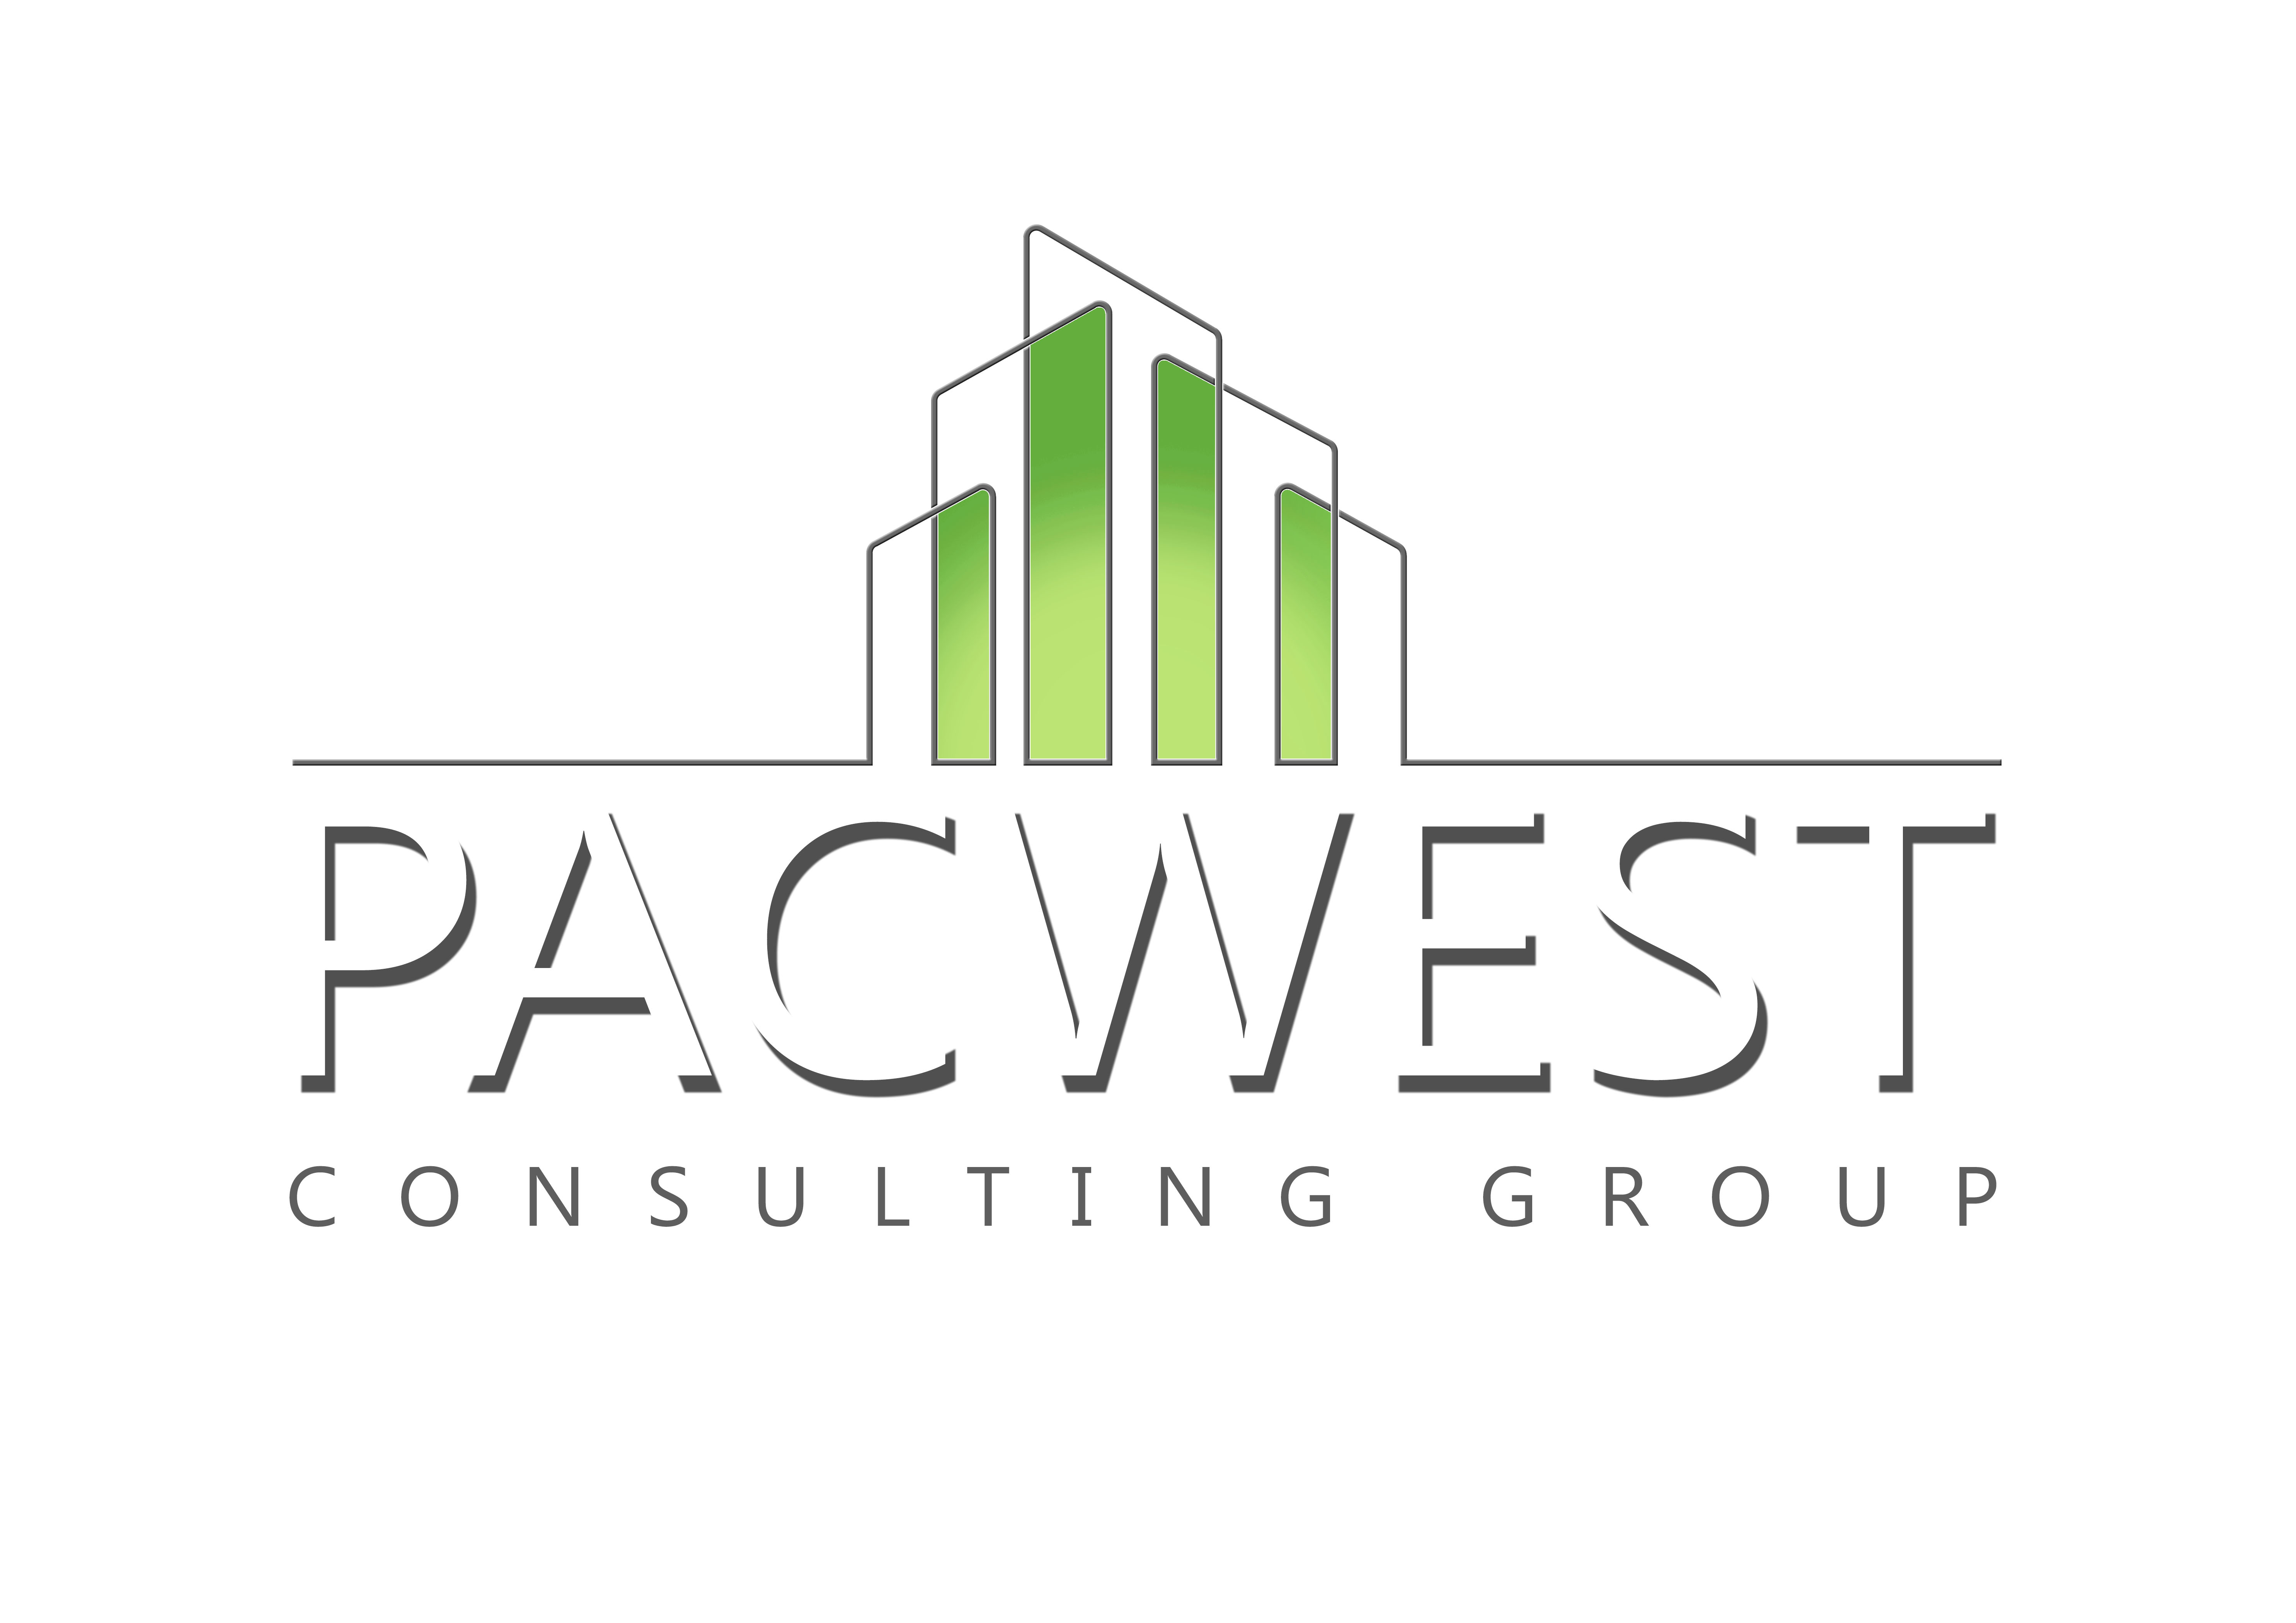 Logo Design by JR Cantos - Entry No. 9 in the Logo Design Contest Imaginative Logo Design for Pacwest Consulting Group.